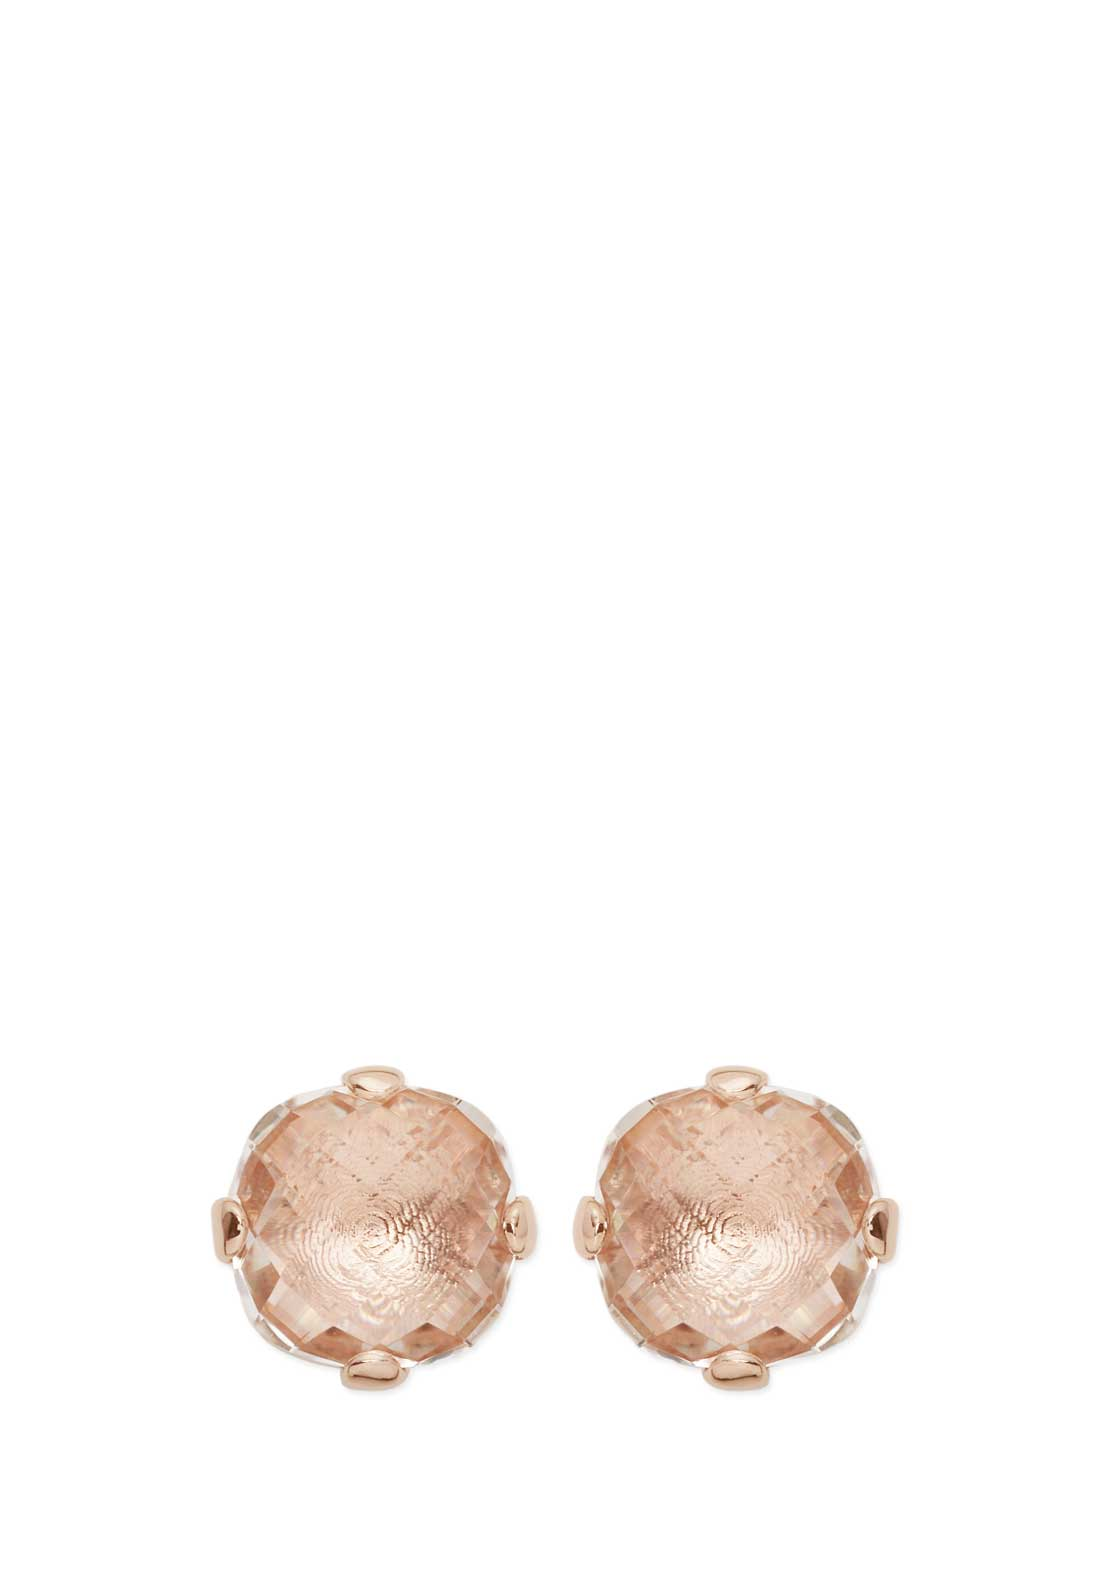 Bronzallure Peach Crystal Earrings, Rose Gold